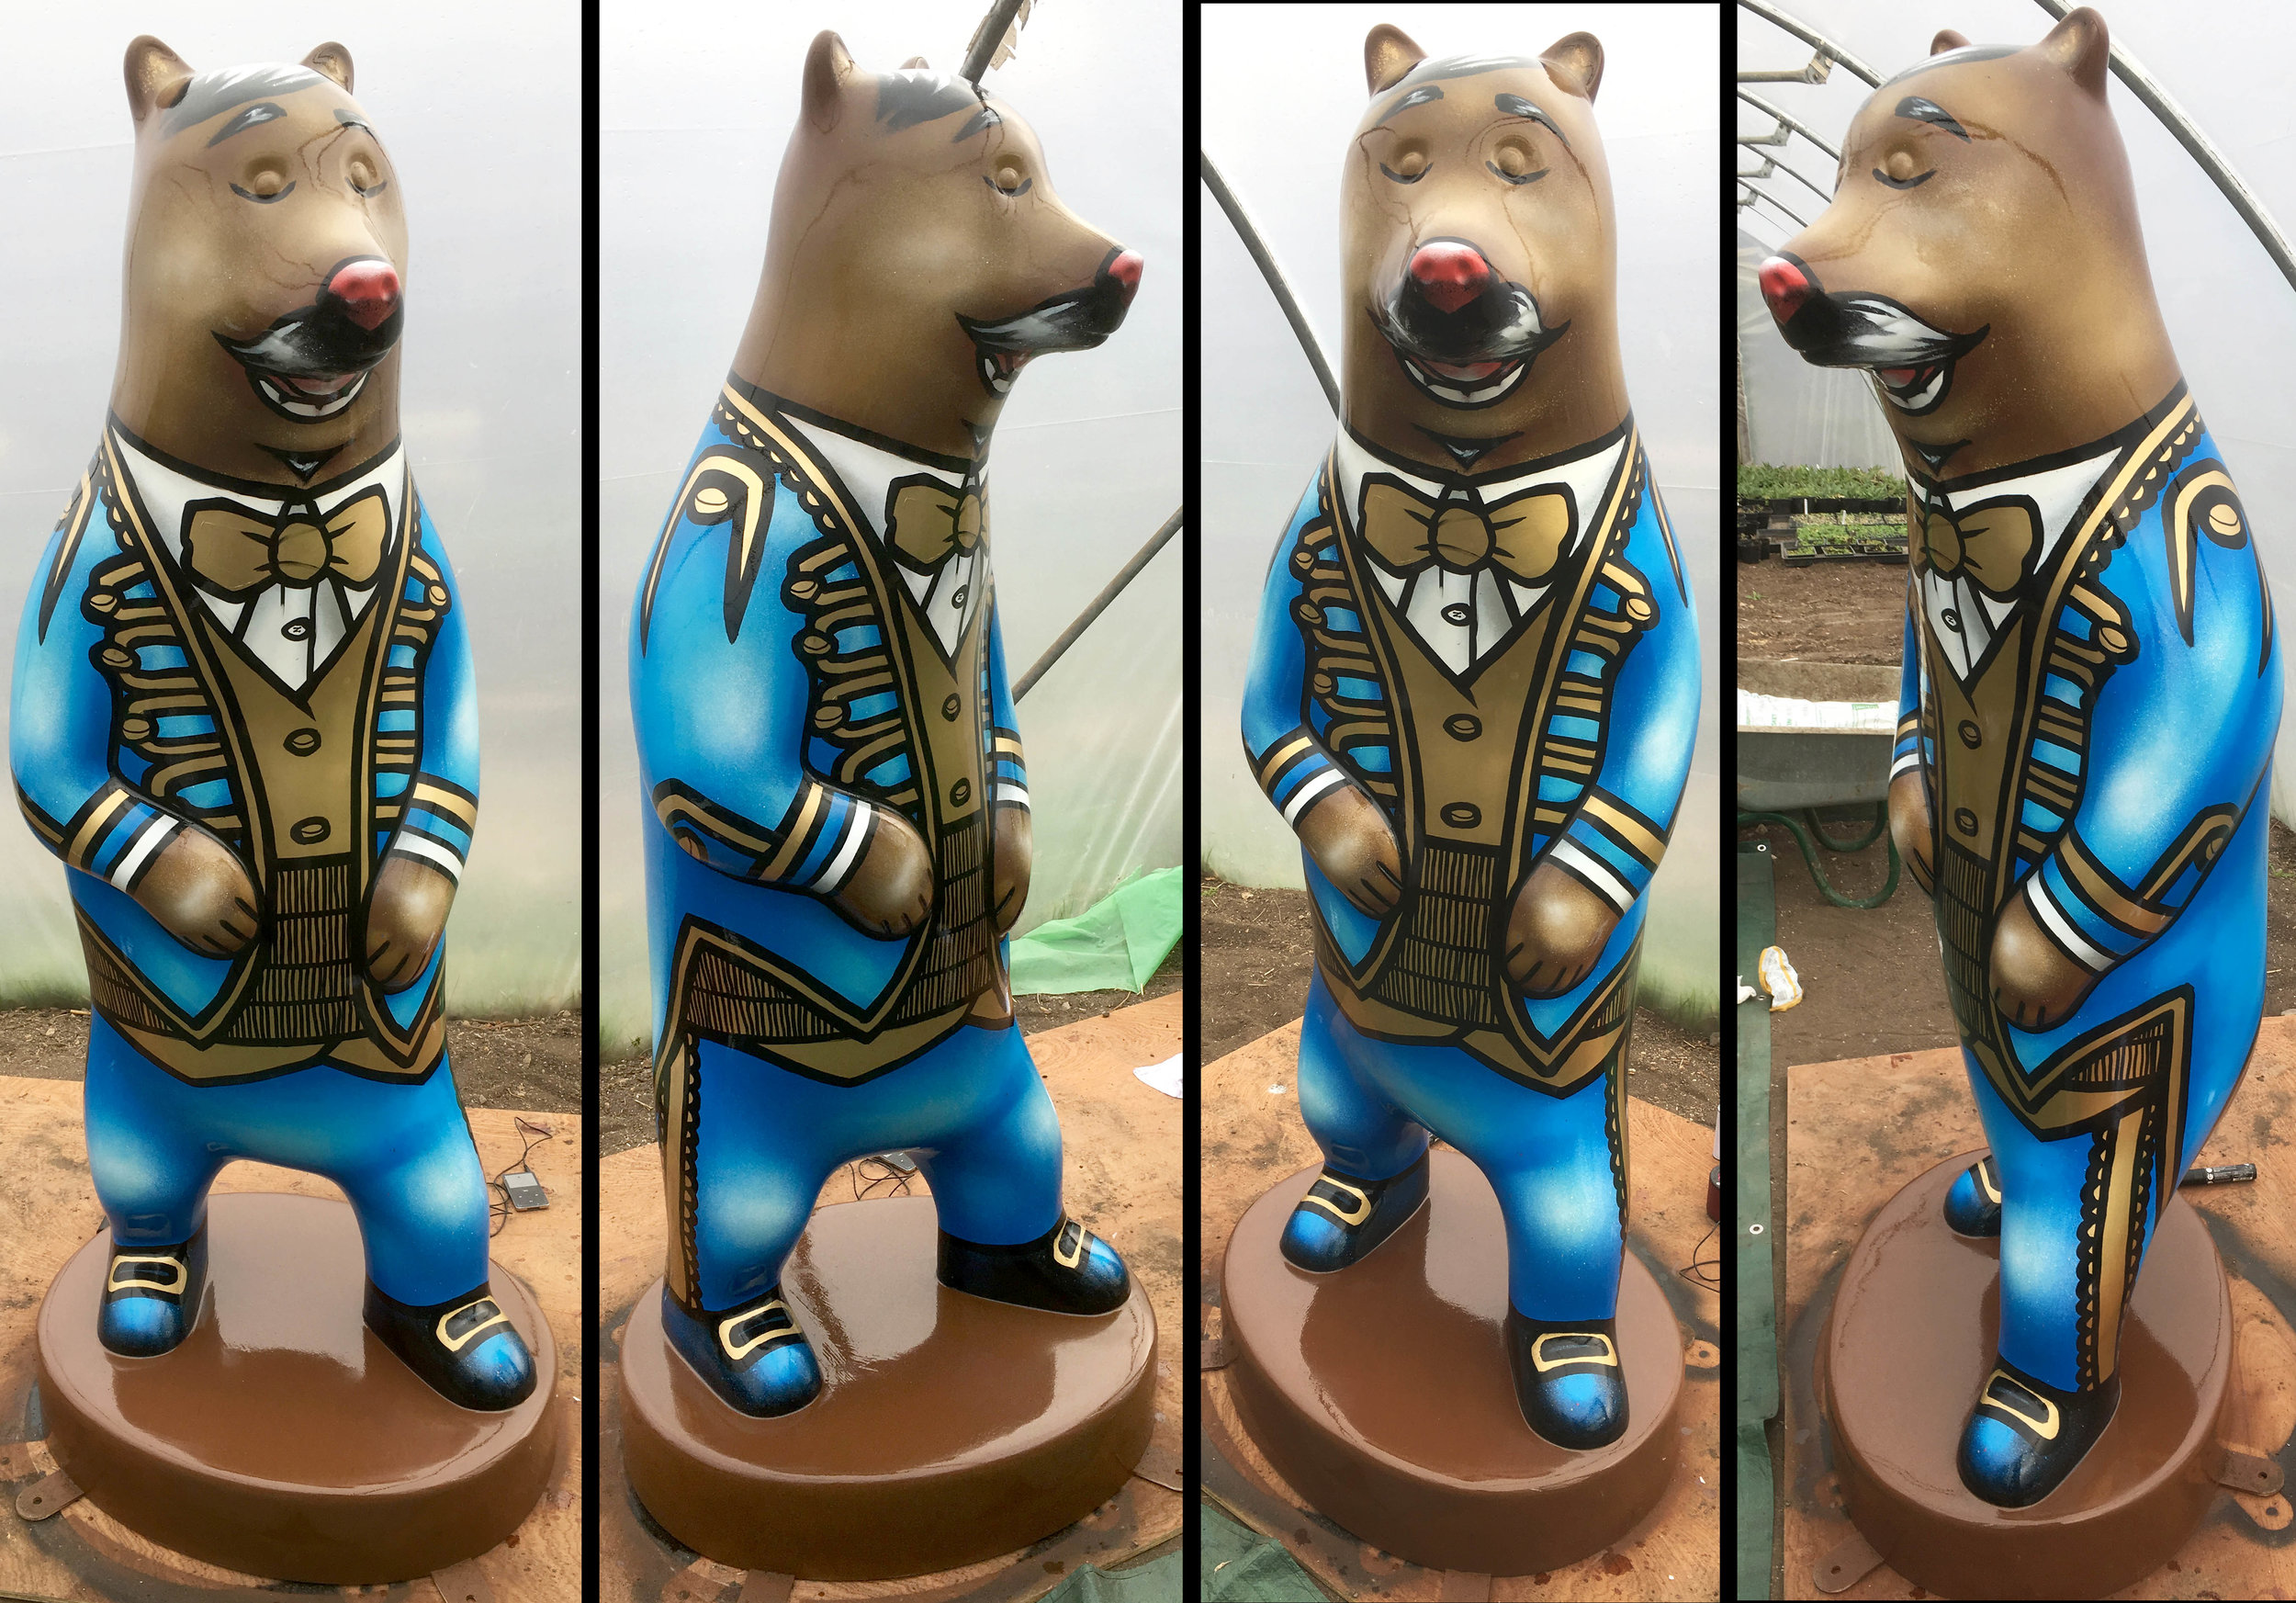 'Enrico Bearuso' My statue for the Wild In Art Bear project, Bristol '19